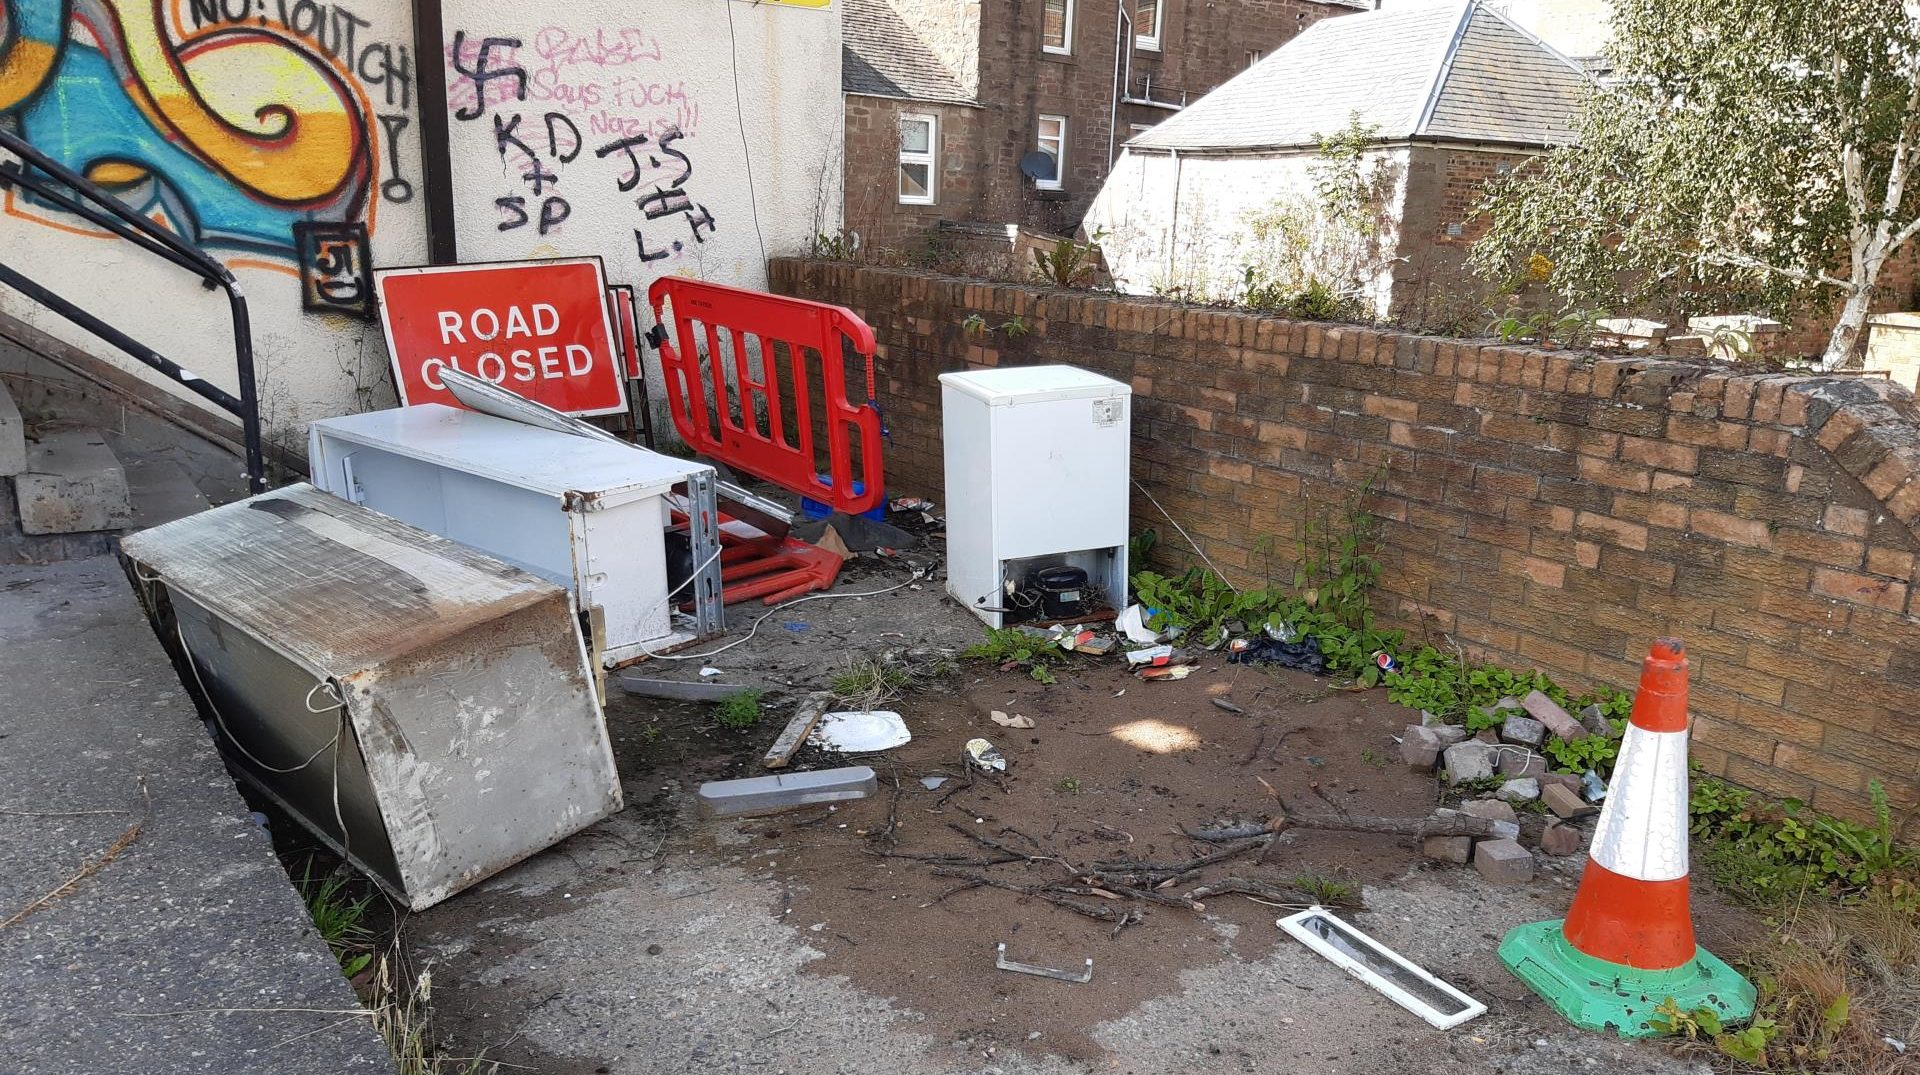 Residents have been complaining of littering and fly-tipping in Lochee.